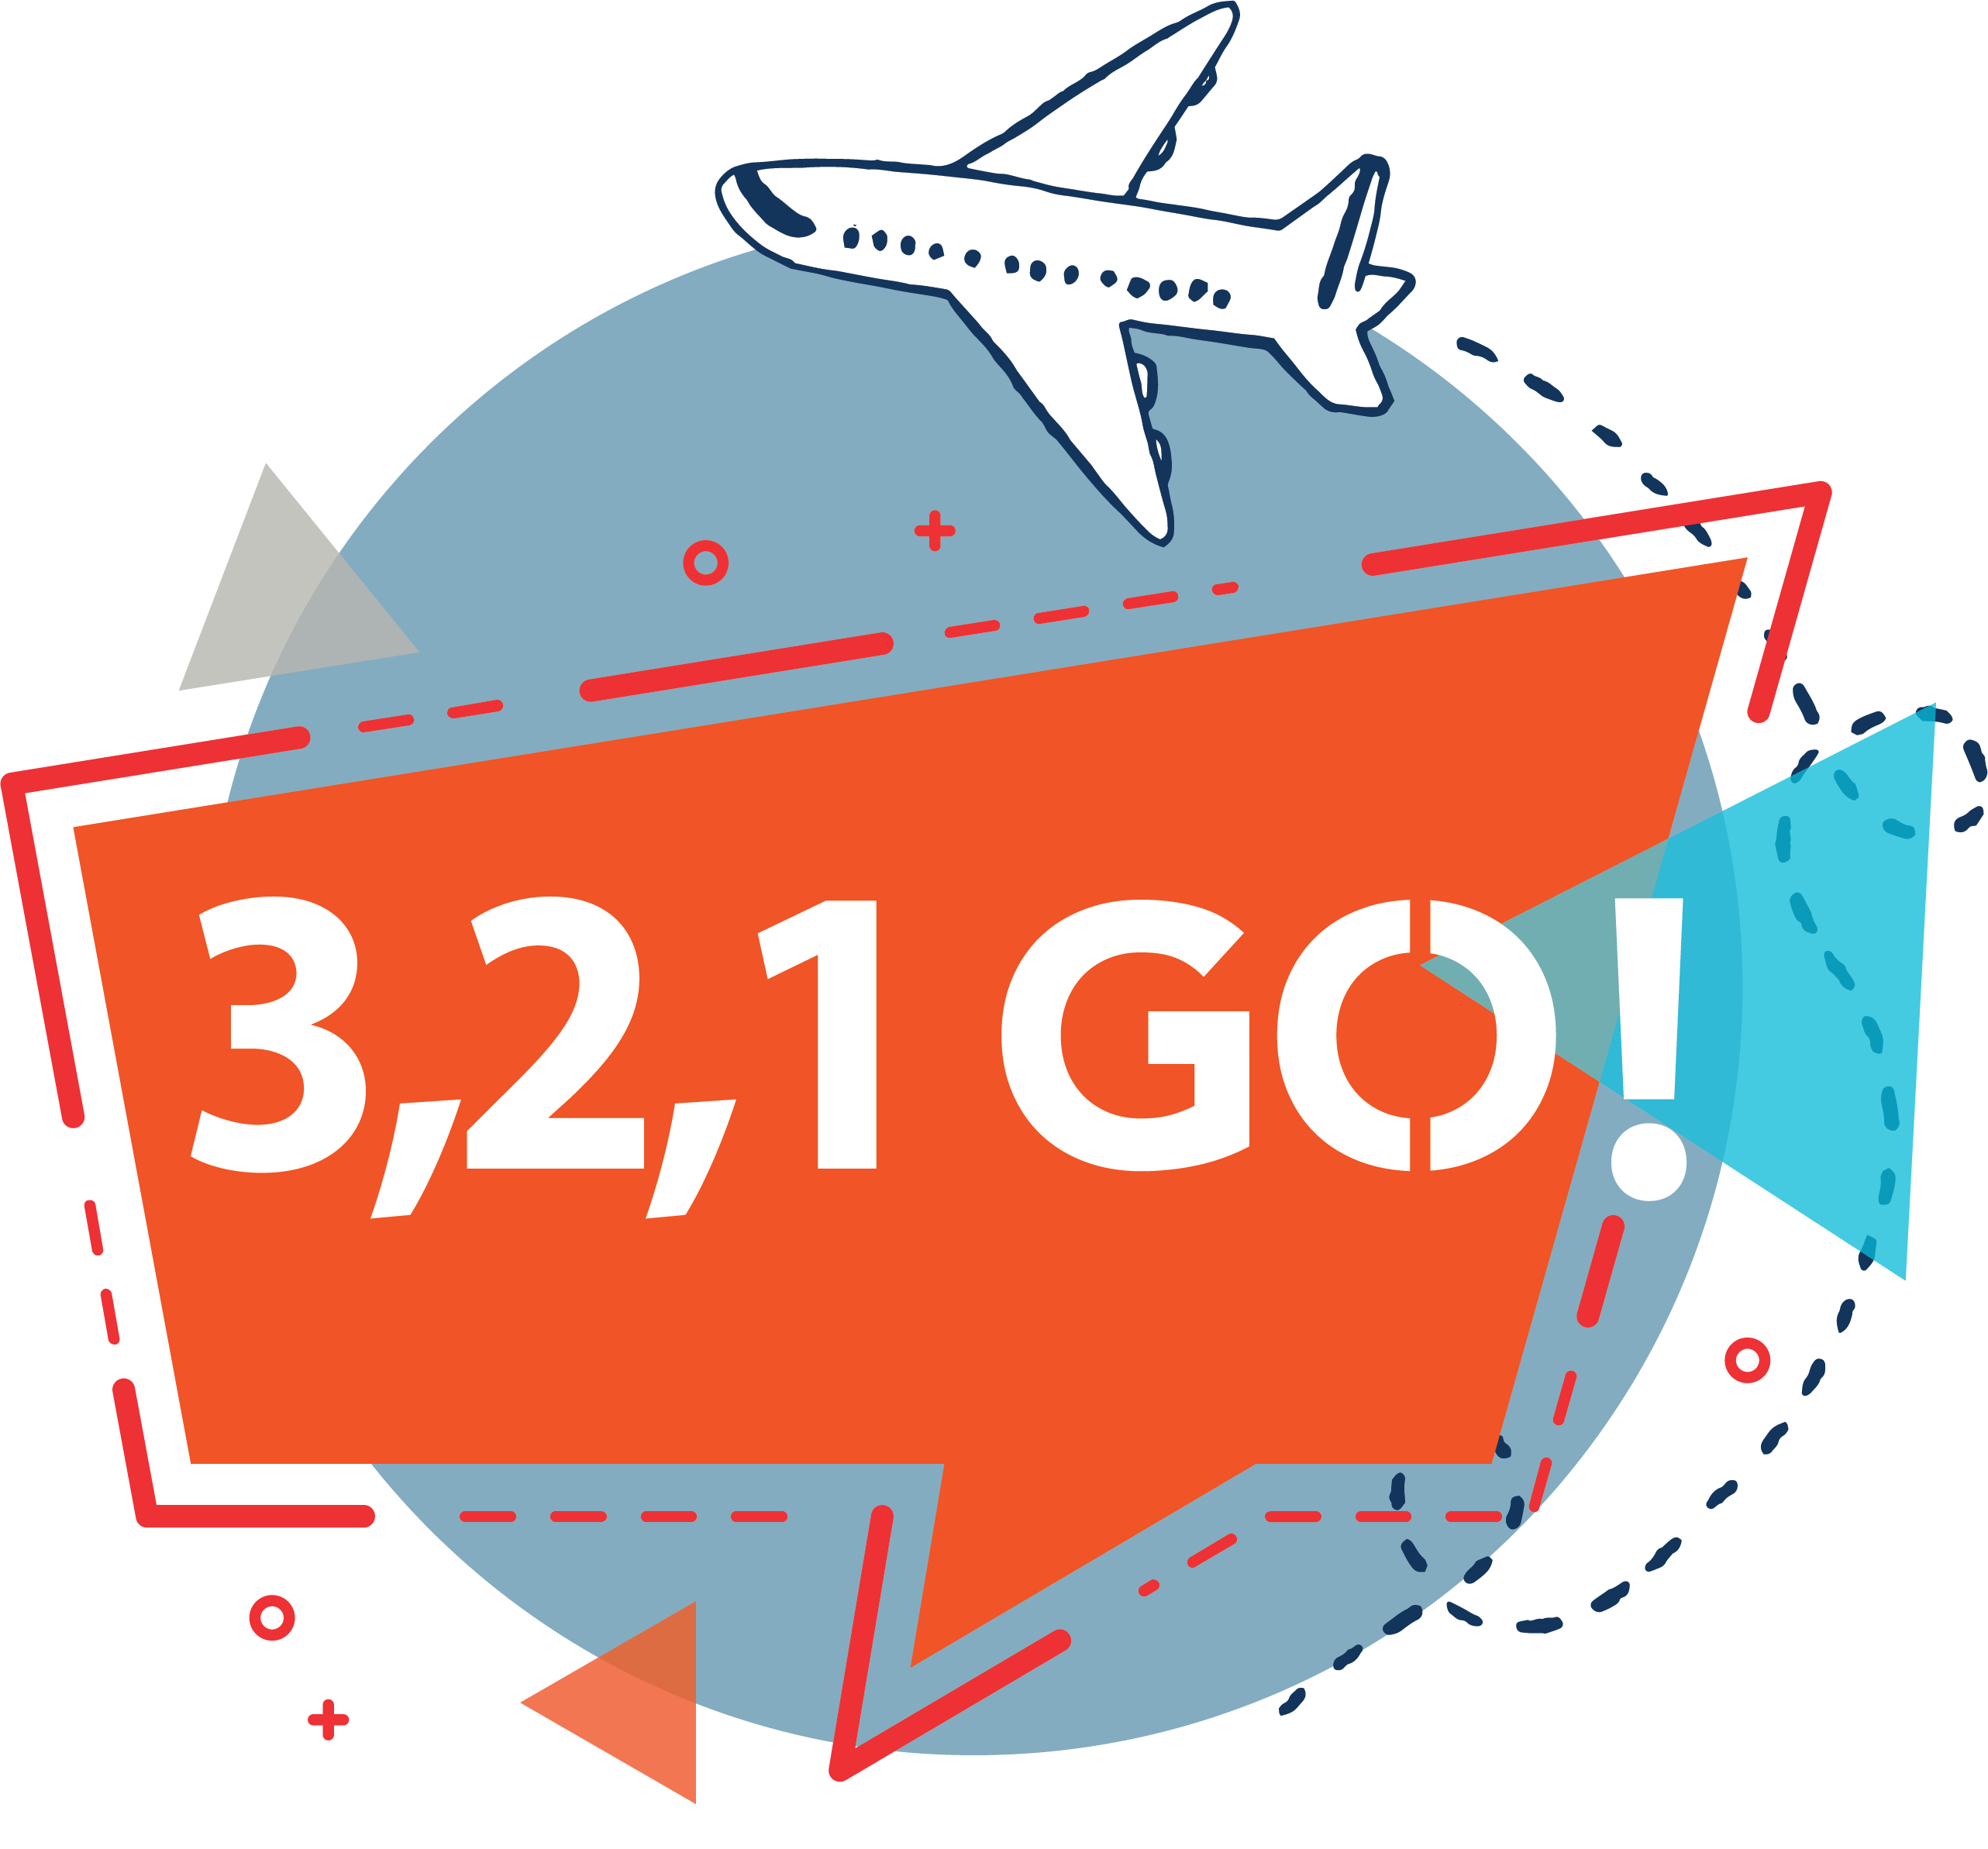 logo 3 2 1 go travel